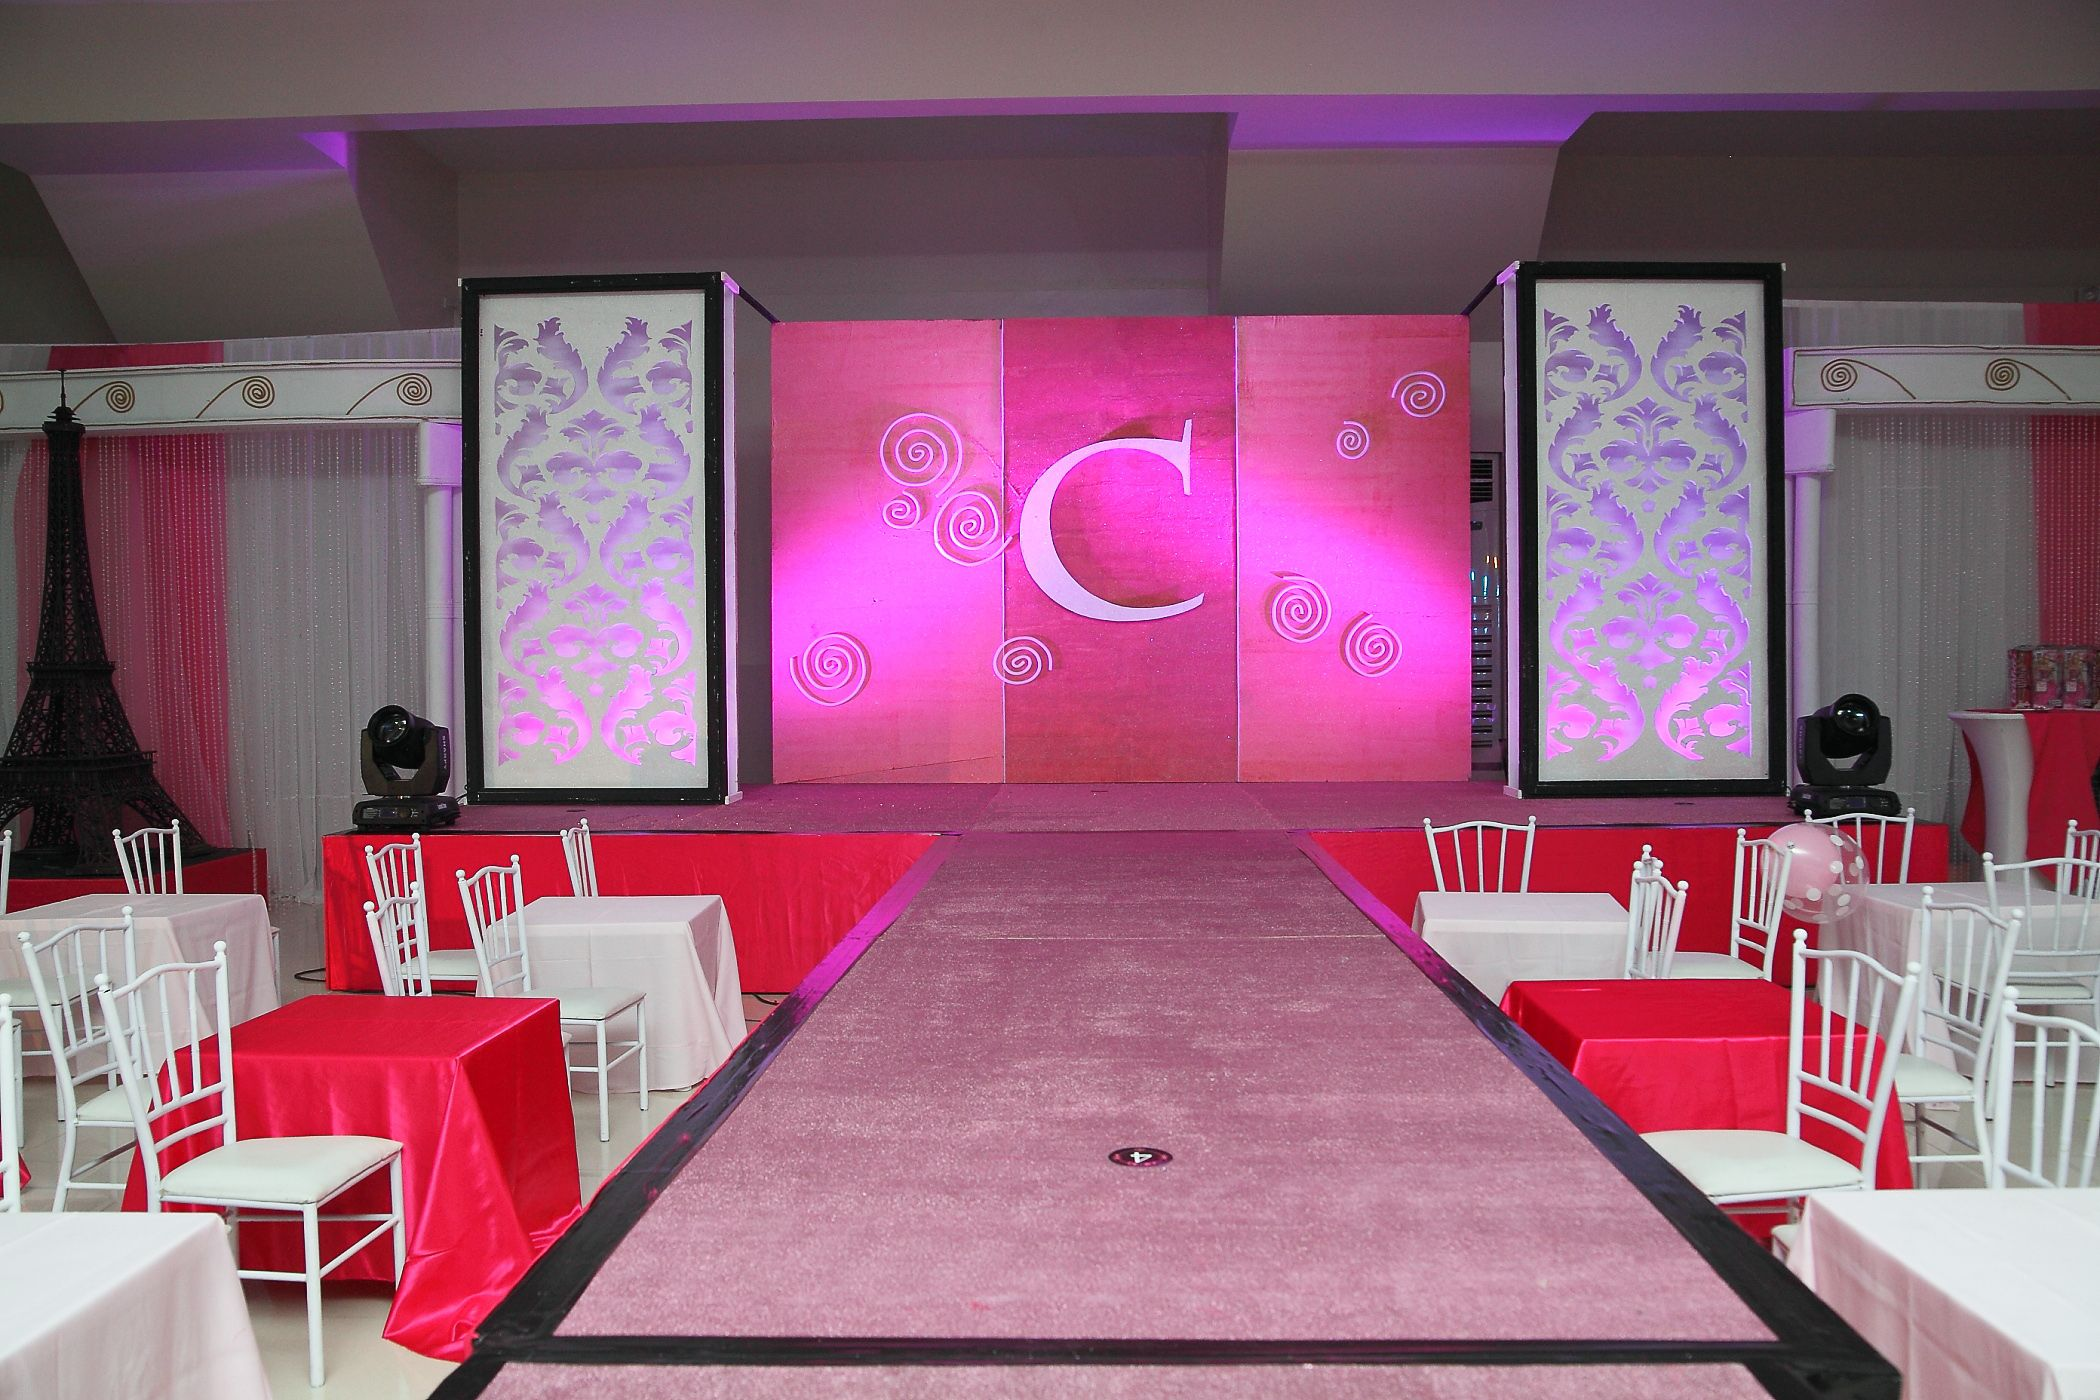 Runway stage set up fashionshowparty barbieparty kids for Runway stages